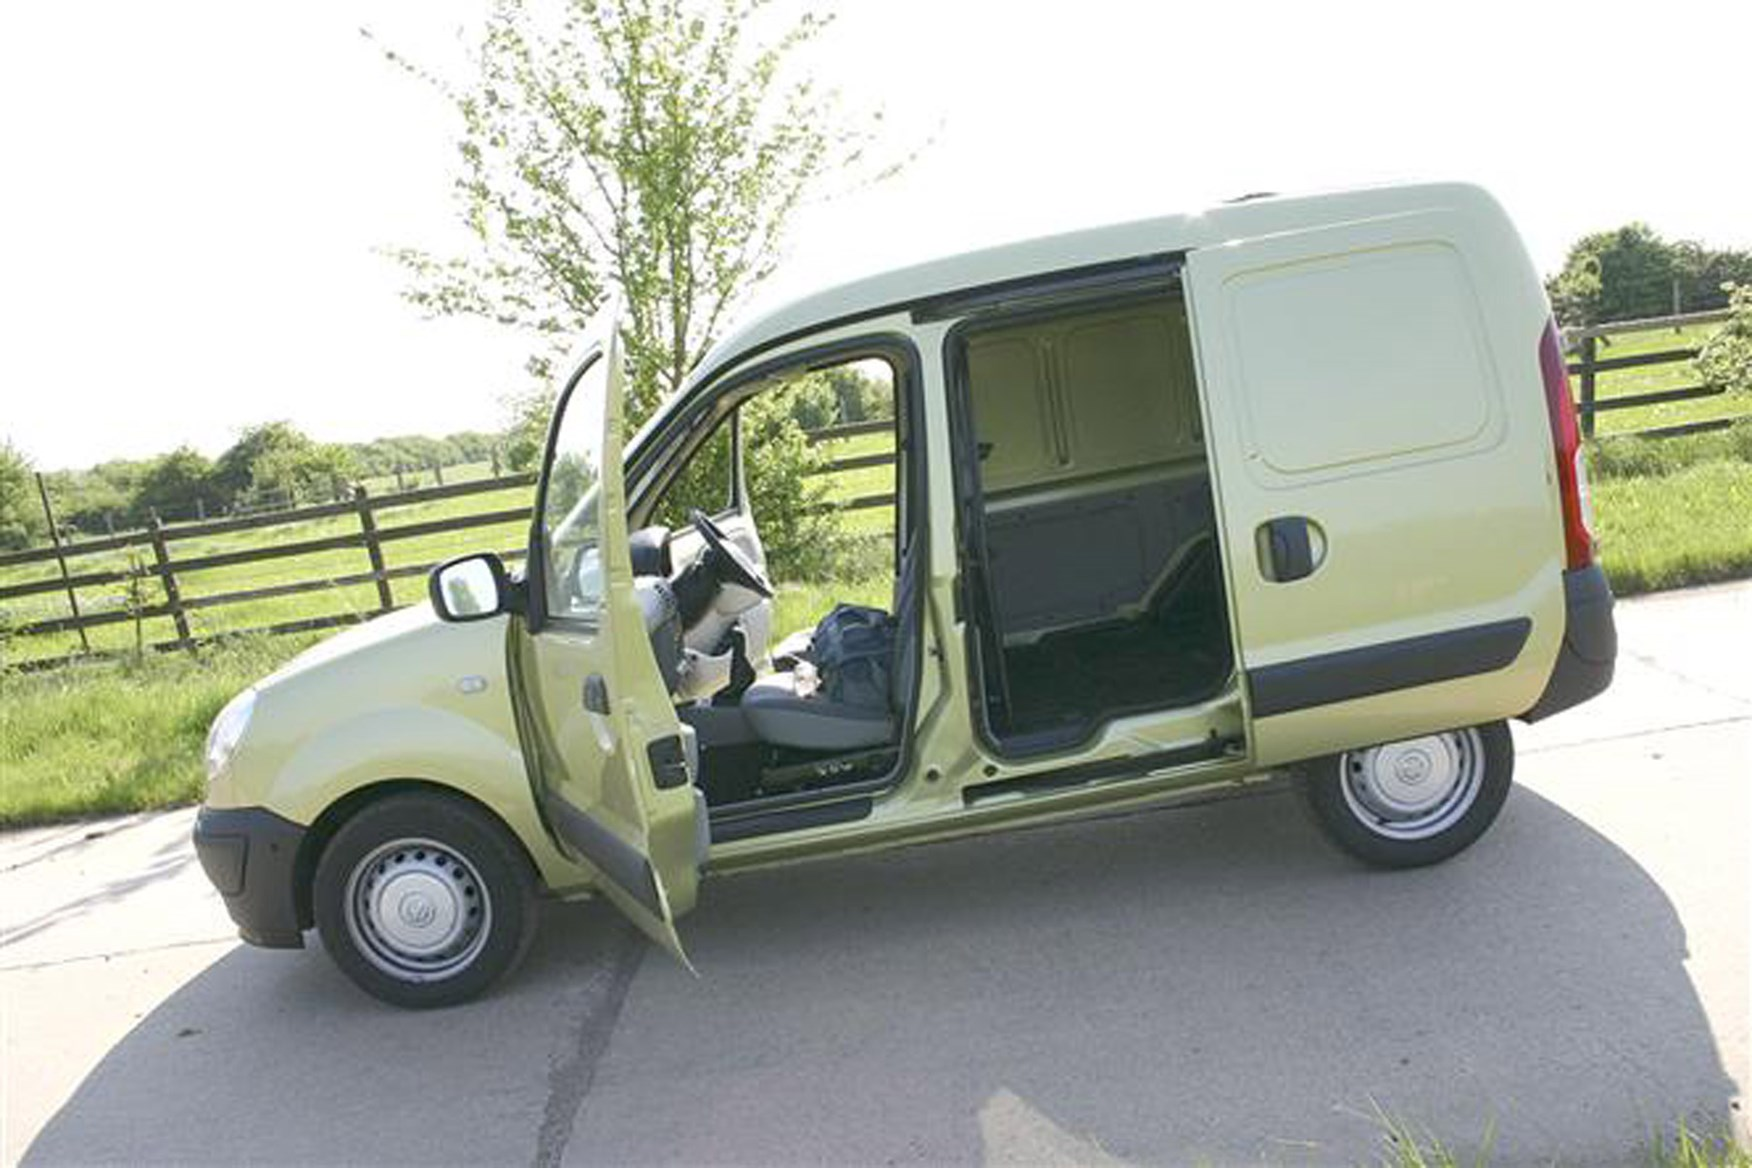 Nissan Kubistar review on Parkers Vans - load area access